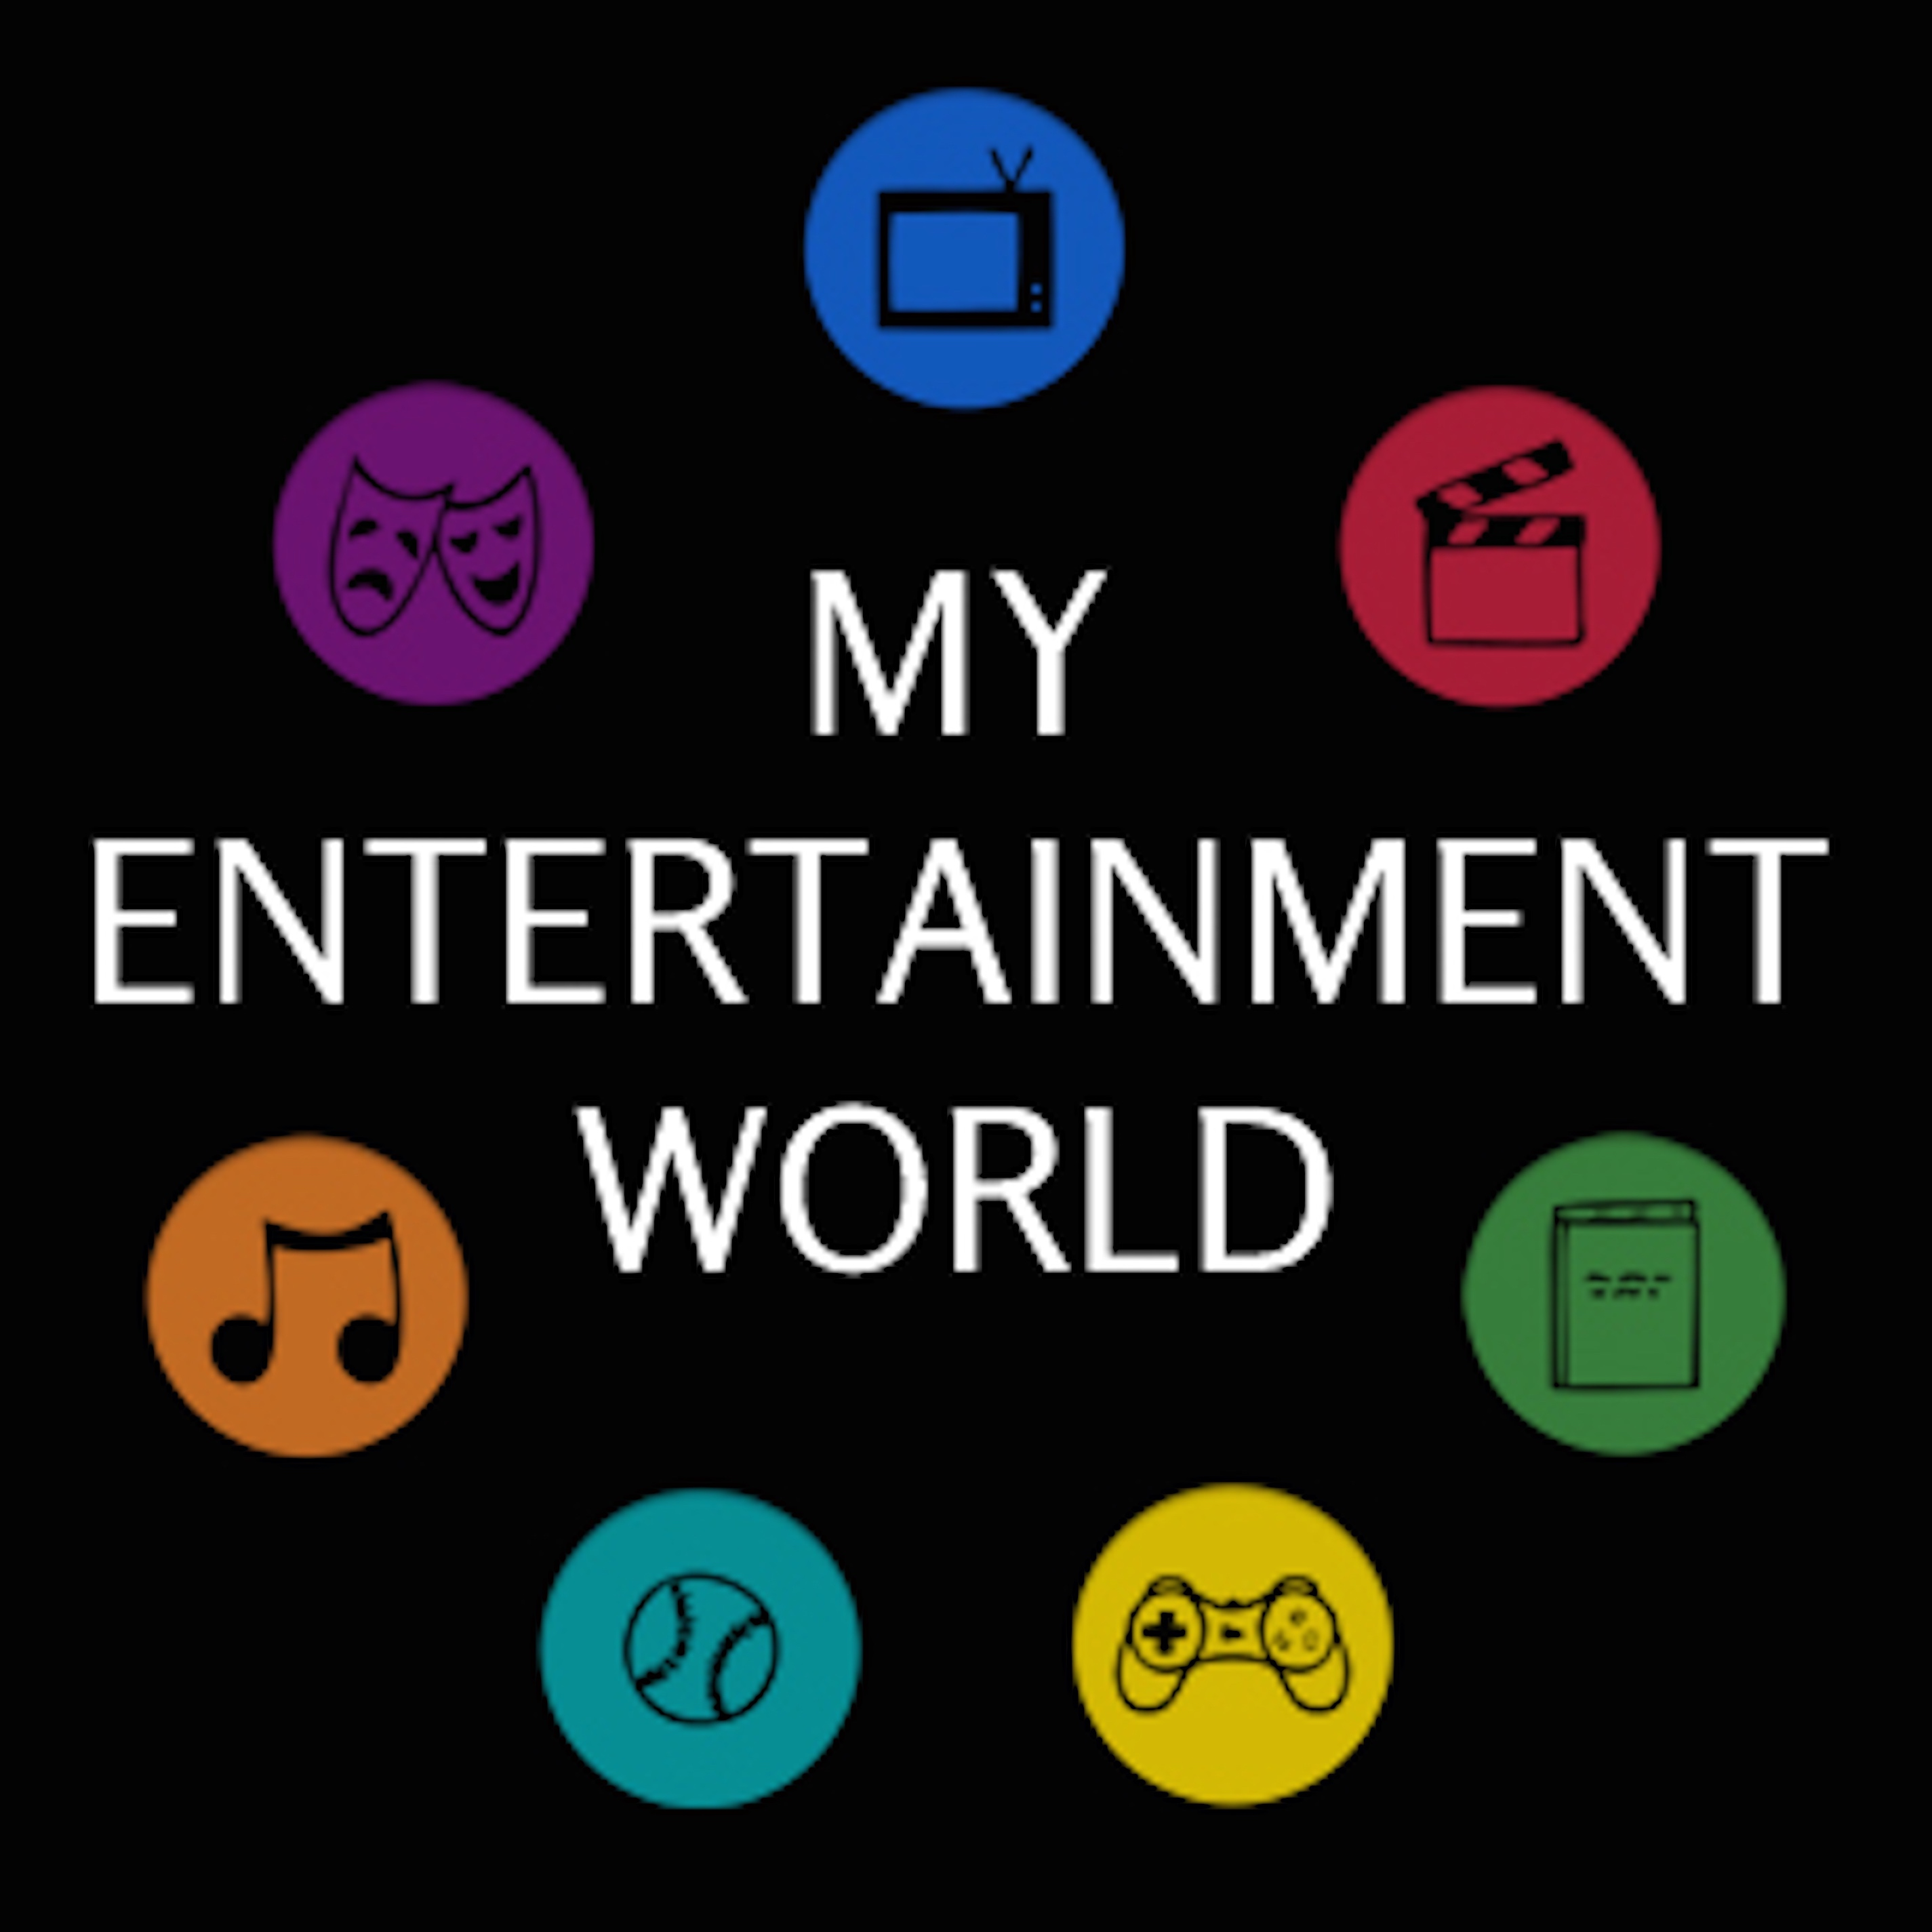 My Entertainment World